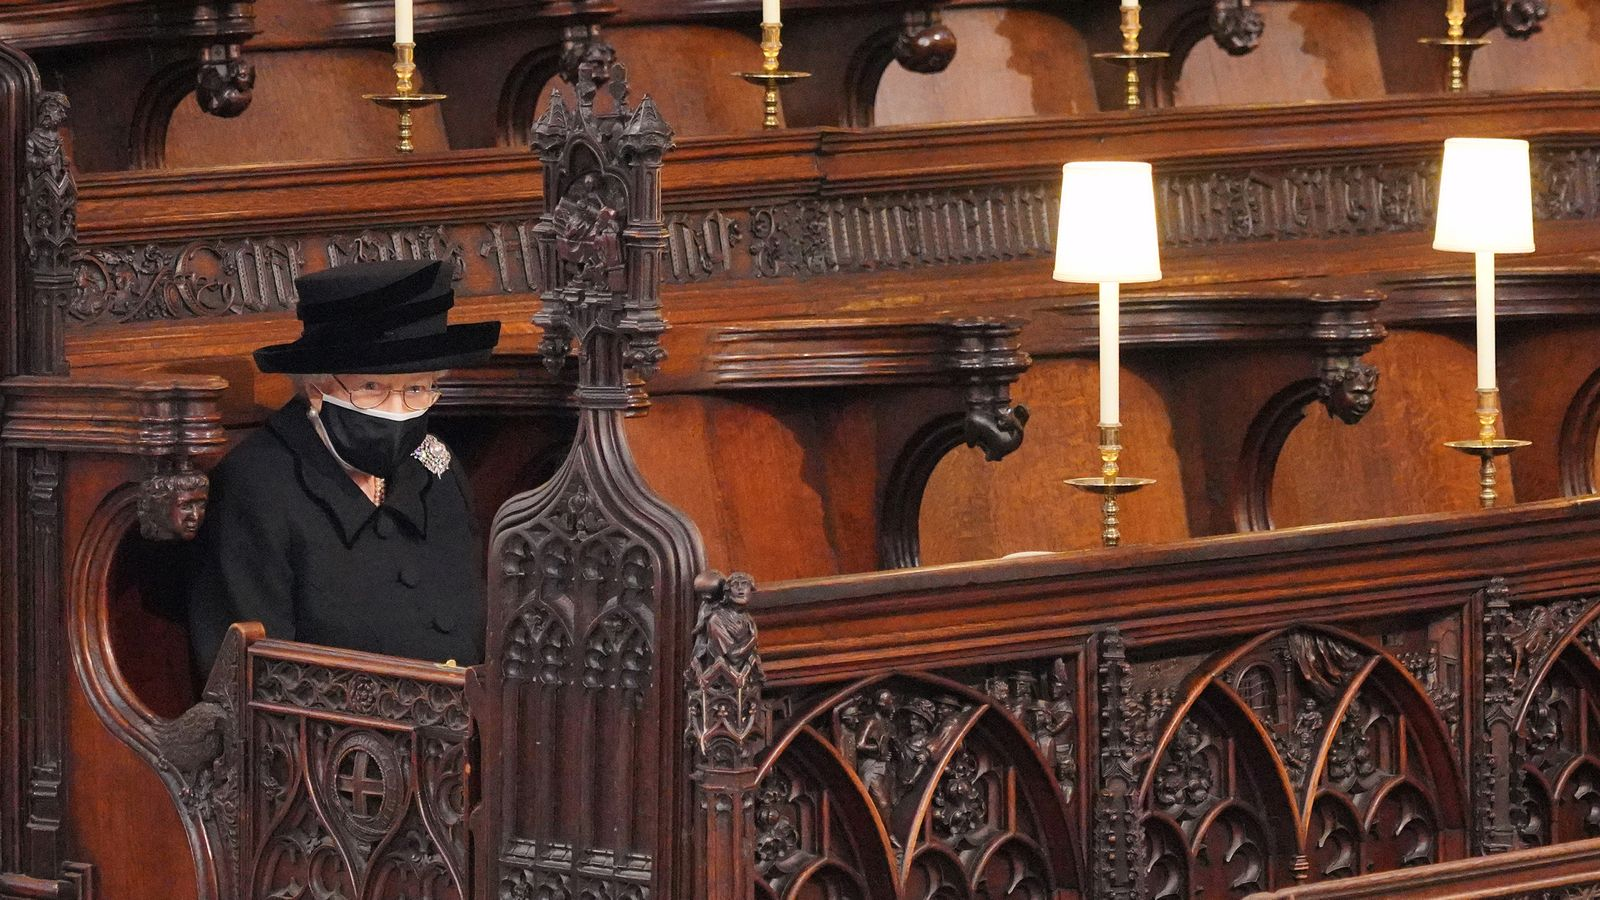 Britain's Queen Elizabeth II takes her seat for the funeral of Britain's Prince Philip, who died at the age of 99, at St George's Chapel, in Windsor, Britain, April 17, 2021. Victoria Jones/Pool via REUTERS